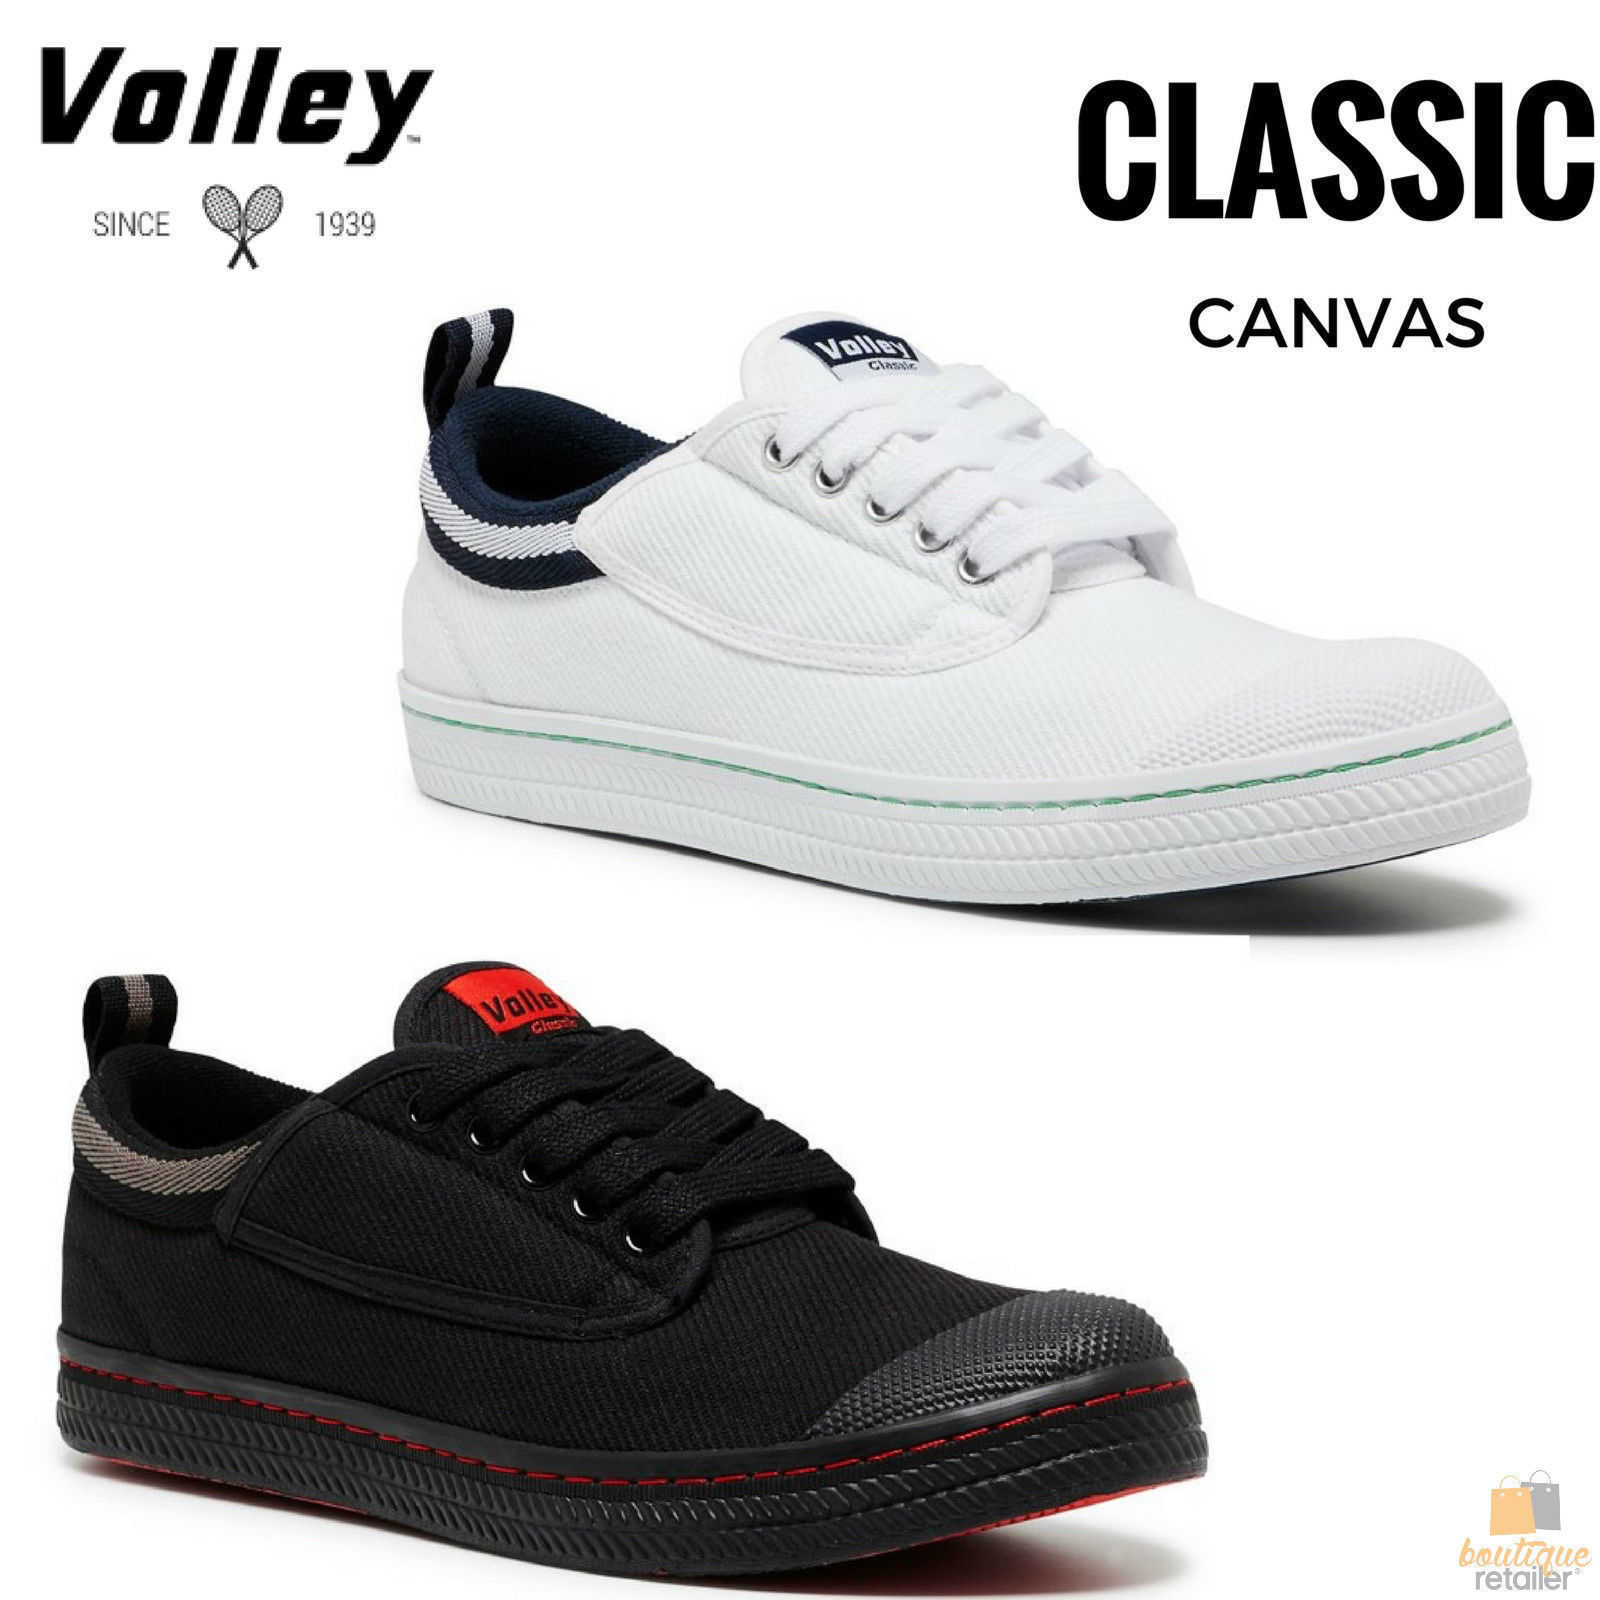 55178d6bd7e8 h m s Remaining. DUNLOP VOLLEYS Volley CLASSIC Men s Sneakers Casual Lace  Up Shoes Canvas New